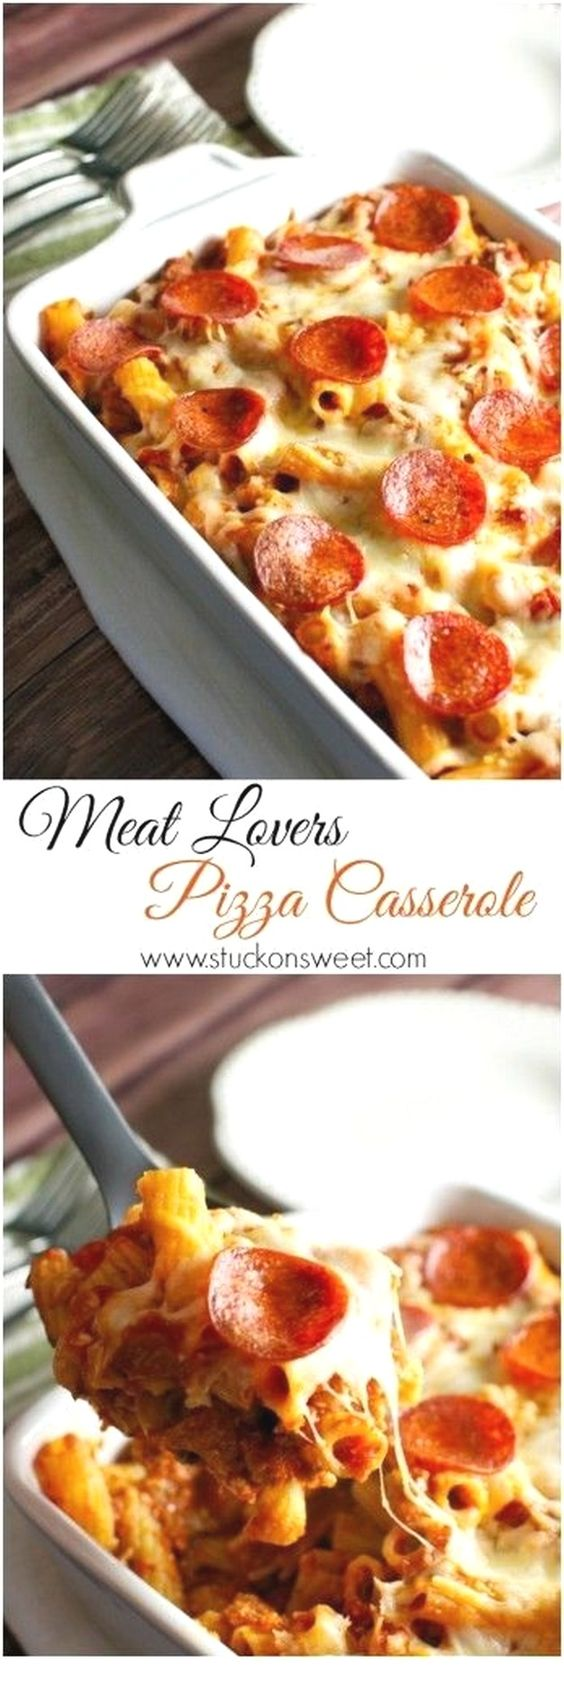 You should make this Meat Lovers Pizza Casserole . B'coz it's very Delicious. * PLEASE CLICK PIN TO READ DETAILS * Casserole Recipes Easy, Popular Casserole Recipes, Casserole Recipes Casserole, Casserole, Casserole Recipes, Casserole Recipes For Dinner , Casserole Recipes Healty, Casserole Dishes